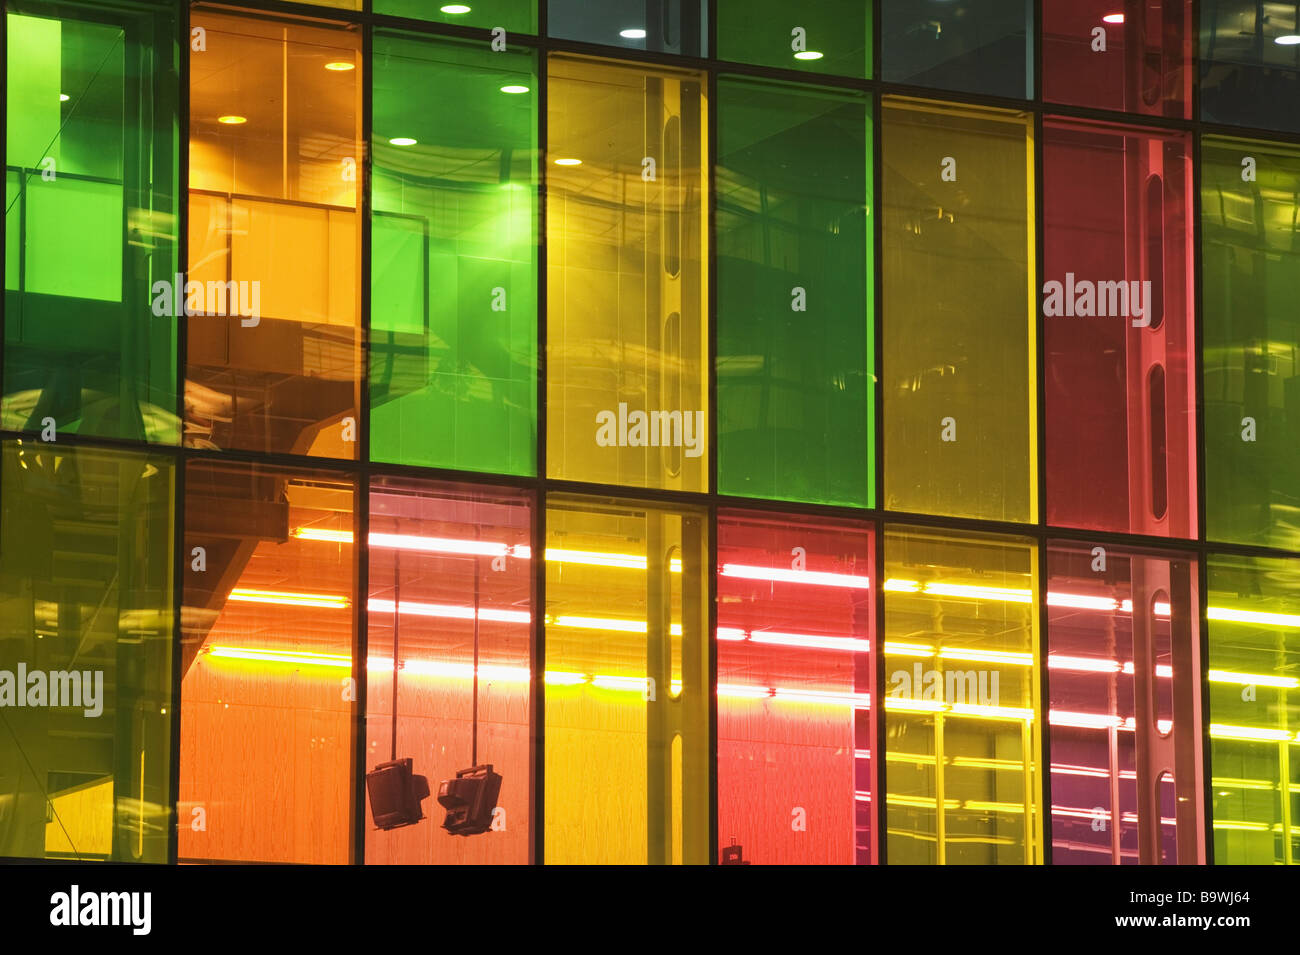 Coloured Glass Montreal Stock Photos & Coloured Glass Montreal Stock ...